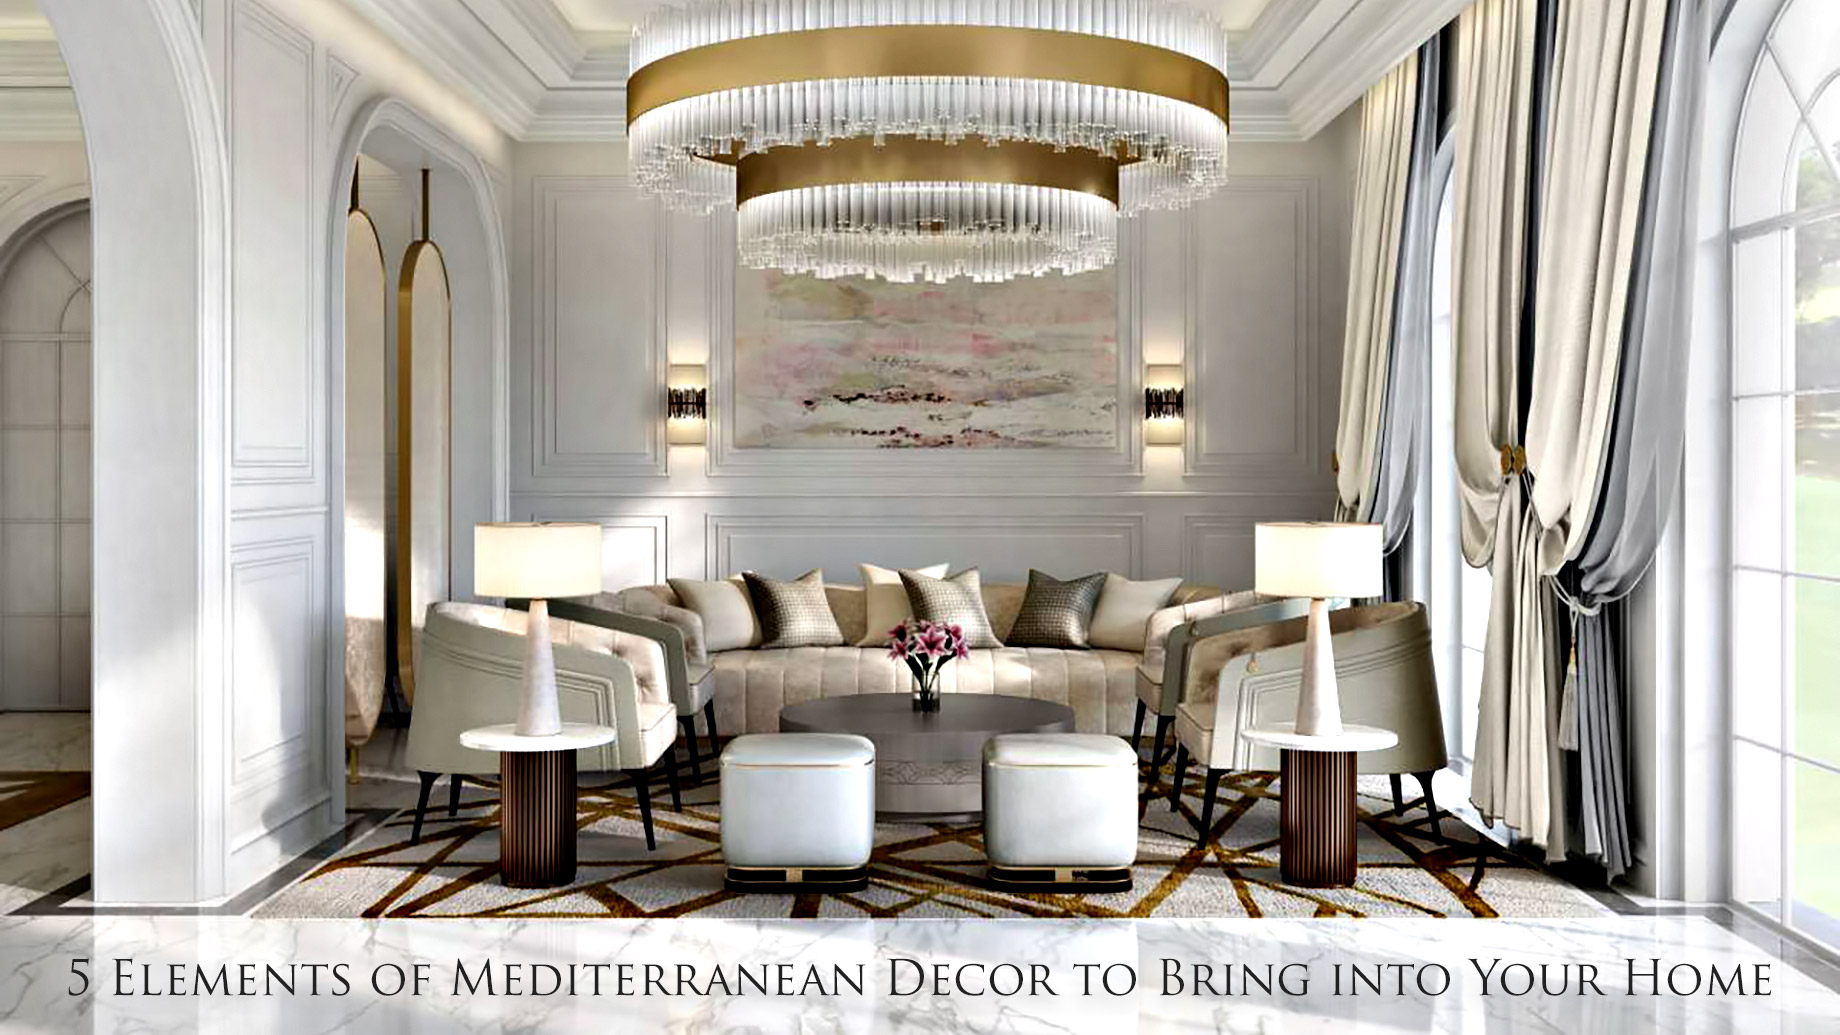 5 Elements Of Mediterranean Decor To Bring Into Your Home The Pinnacle List